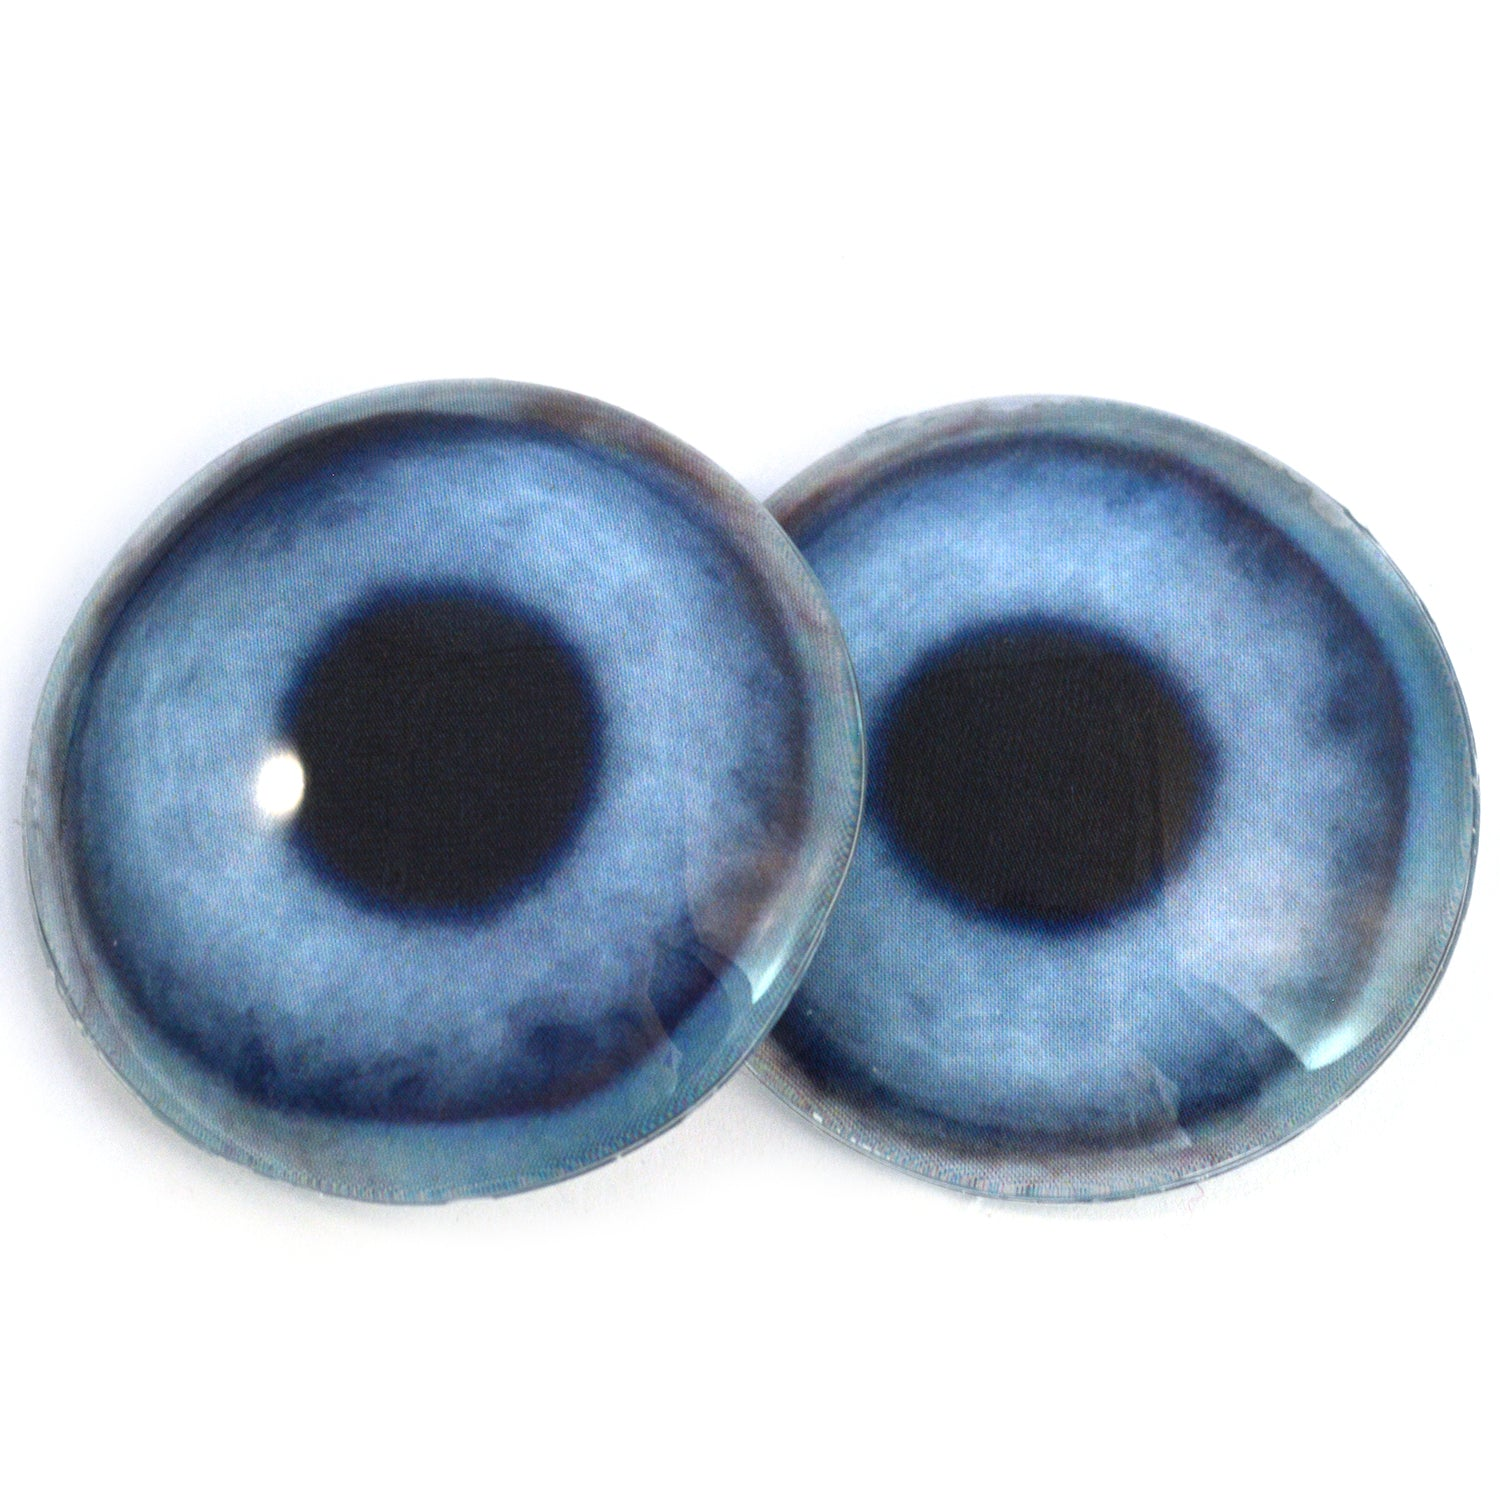 Pair of 25mm Blue Dog Glass Eyes for Jewelry Pendants or Taxidermy Doll Making